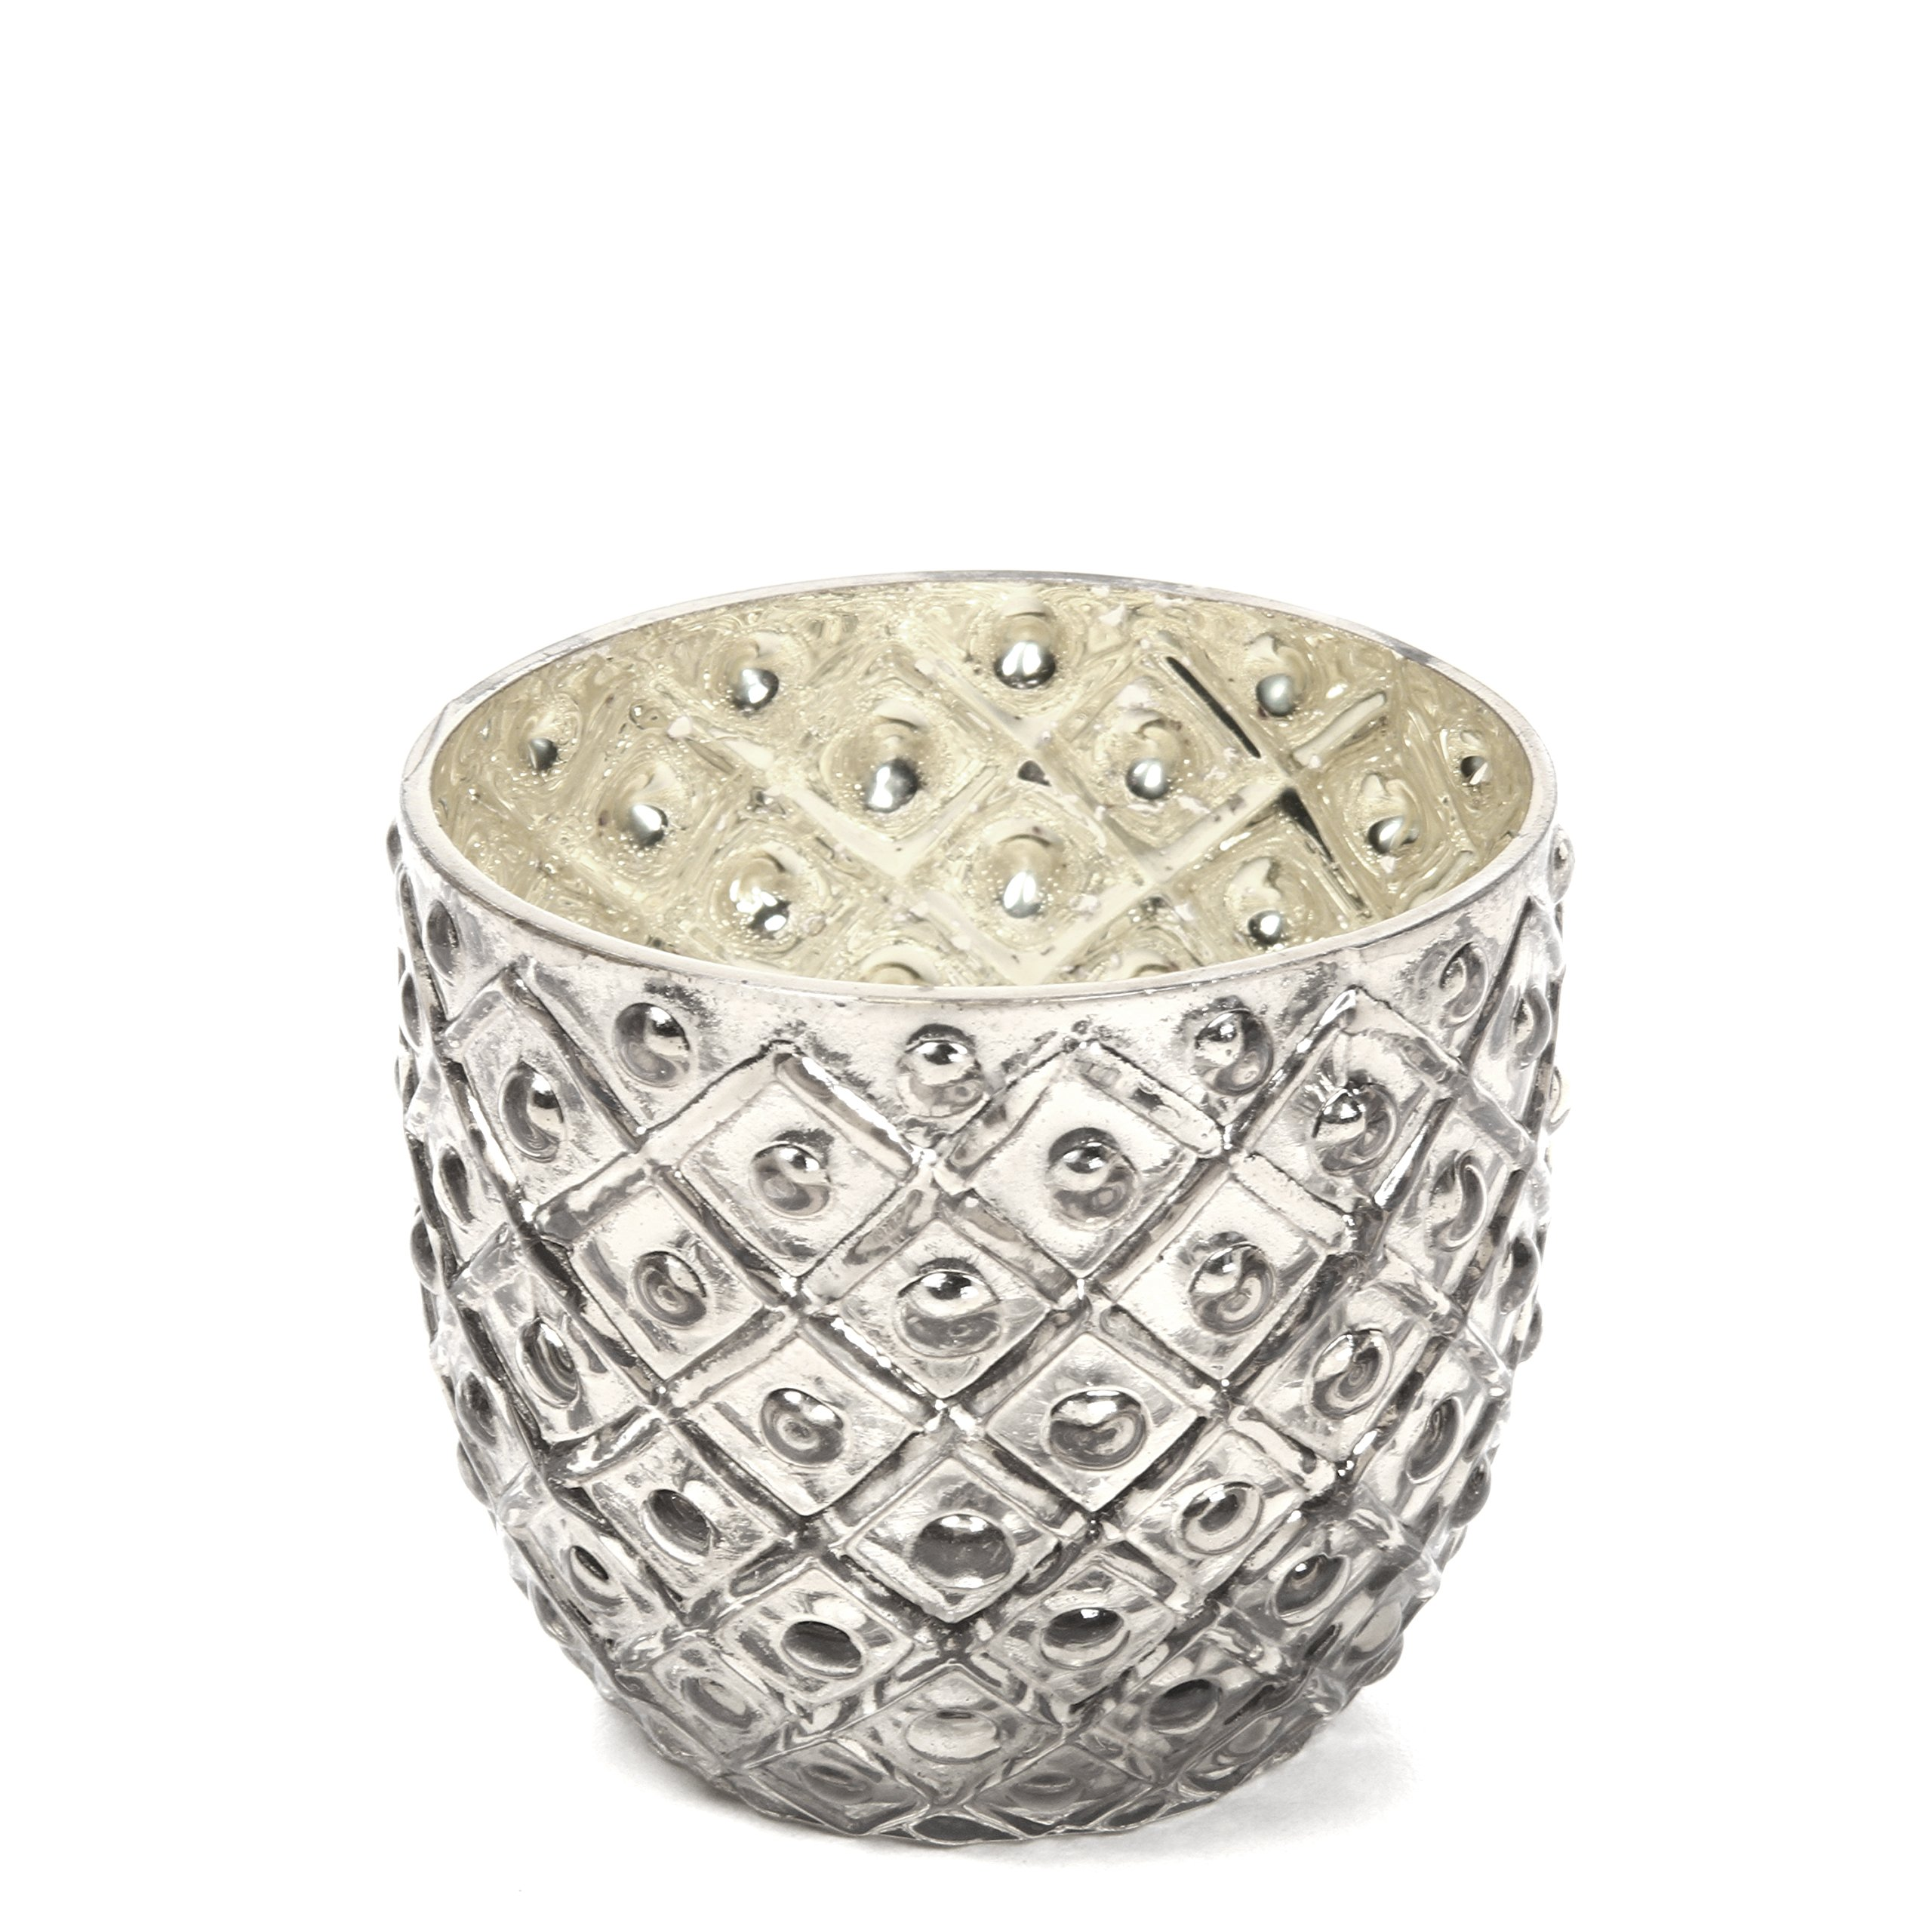 Hosley Set of 6 - Metallic Antique Silver LED Glass Votive/Tea Light Candle Holder 2.75'' Diameter. Ideal for Bridal, Weddings, Parties, Special Events, Spa and Aromatherapy Mini Flower Pot O4